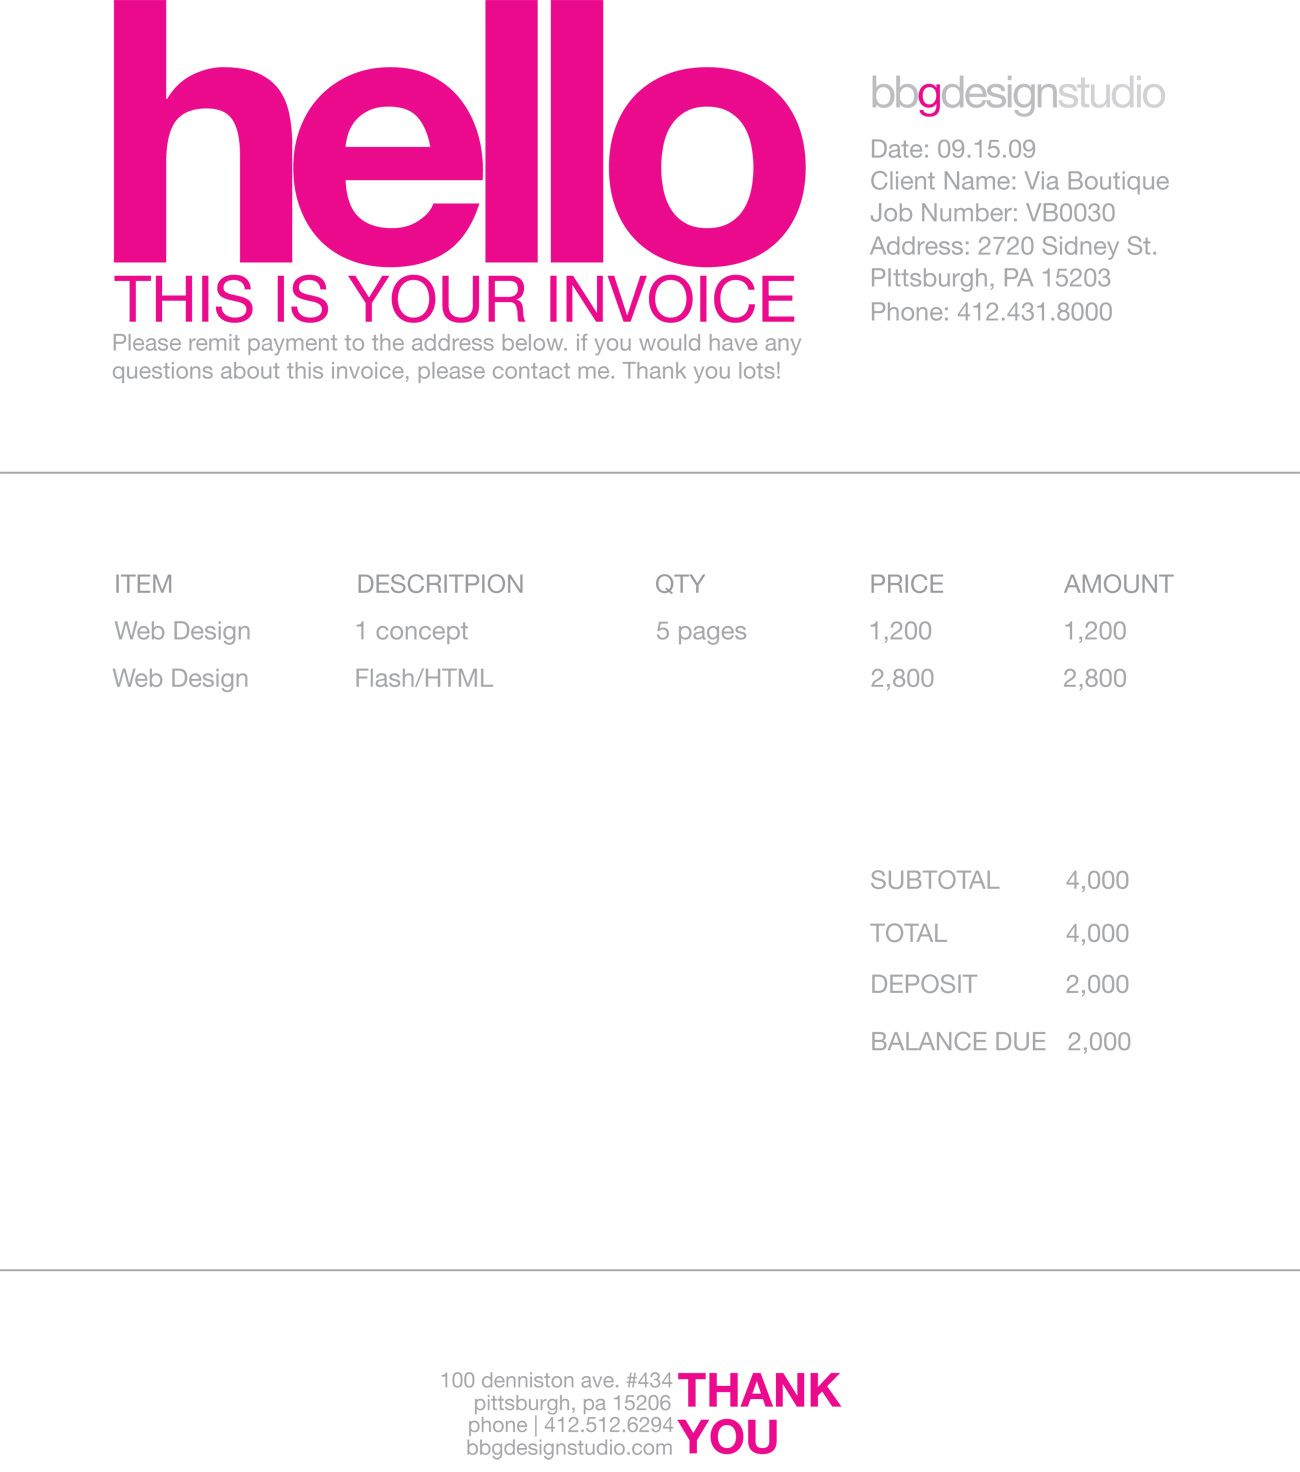 Coachoutletonlineplusus  Picturesque  Images About Invoice Design On Pinterest With Heavenly Get Money Like An Invoice Besides Handwritten Invoice Template Furthermore Audi Q Invoice Price  With Cool Invoice Cover Letter Sample Also Free Printable Invoices Pdf In Addition Self Employed Invoice And Create Invoices For Free As Well As Accounts Receivable Invoice Additionally Cheap Invoice Software From Pinterestcom With Coachoutletonlineplusus  Heavenly  Images About Invoice Design On Pinterest With Cool Get Money Like An Invoice Besides Handwritten Invoice Template Furthermore Audi Q Invoice Price  And Picturesque Invoice Cover Letter Sample Also Free Printable Invoices Pdf In Addition Self Employed Invoice From Pinterestcom